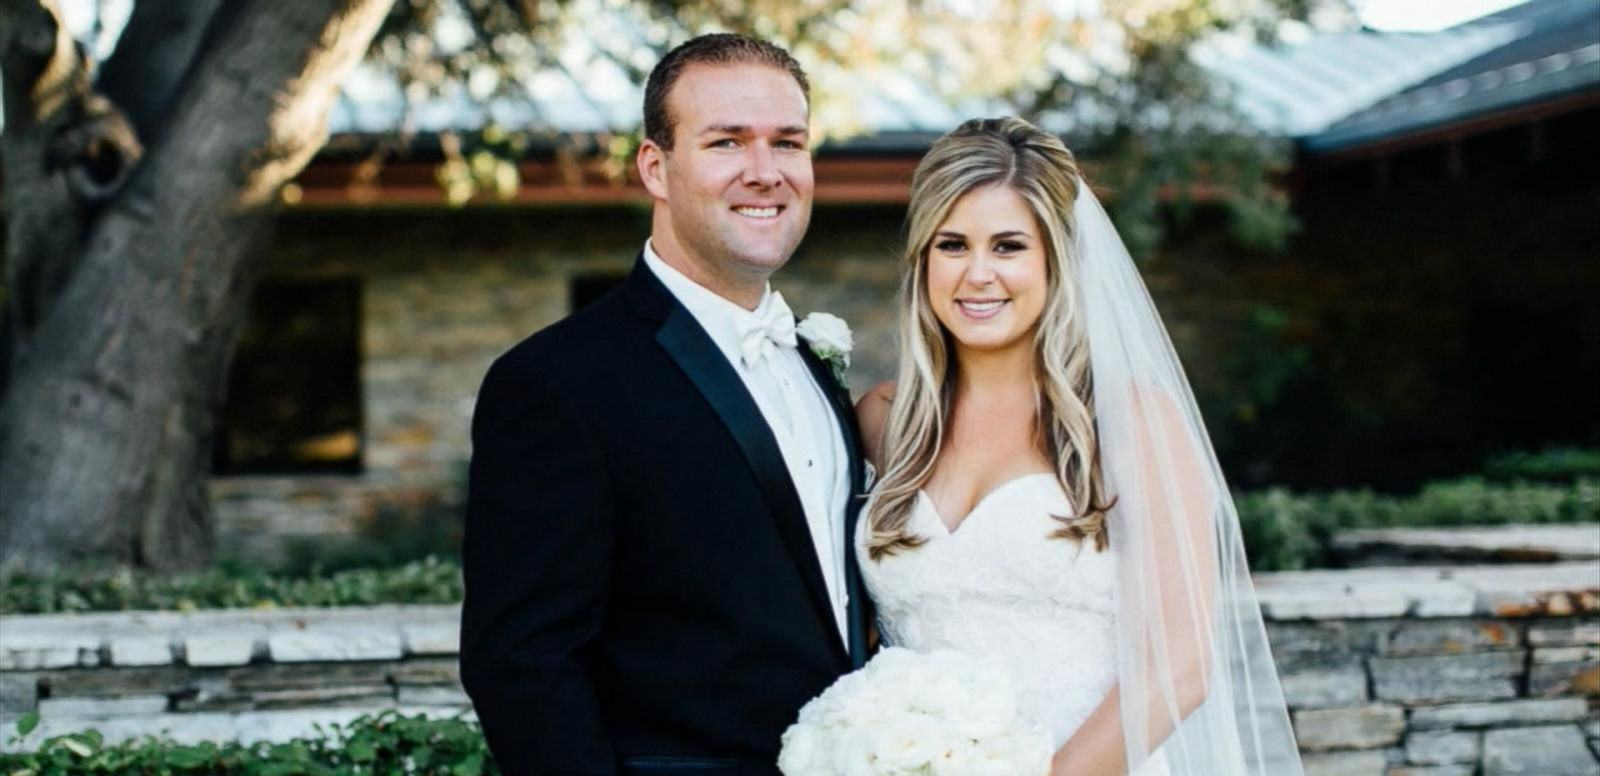 Firefighter Groom Saves Life Of Guest At His Own Wedding UNILAD ff34